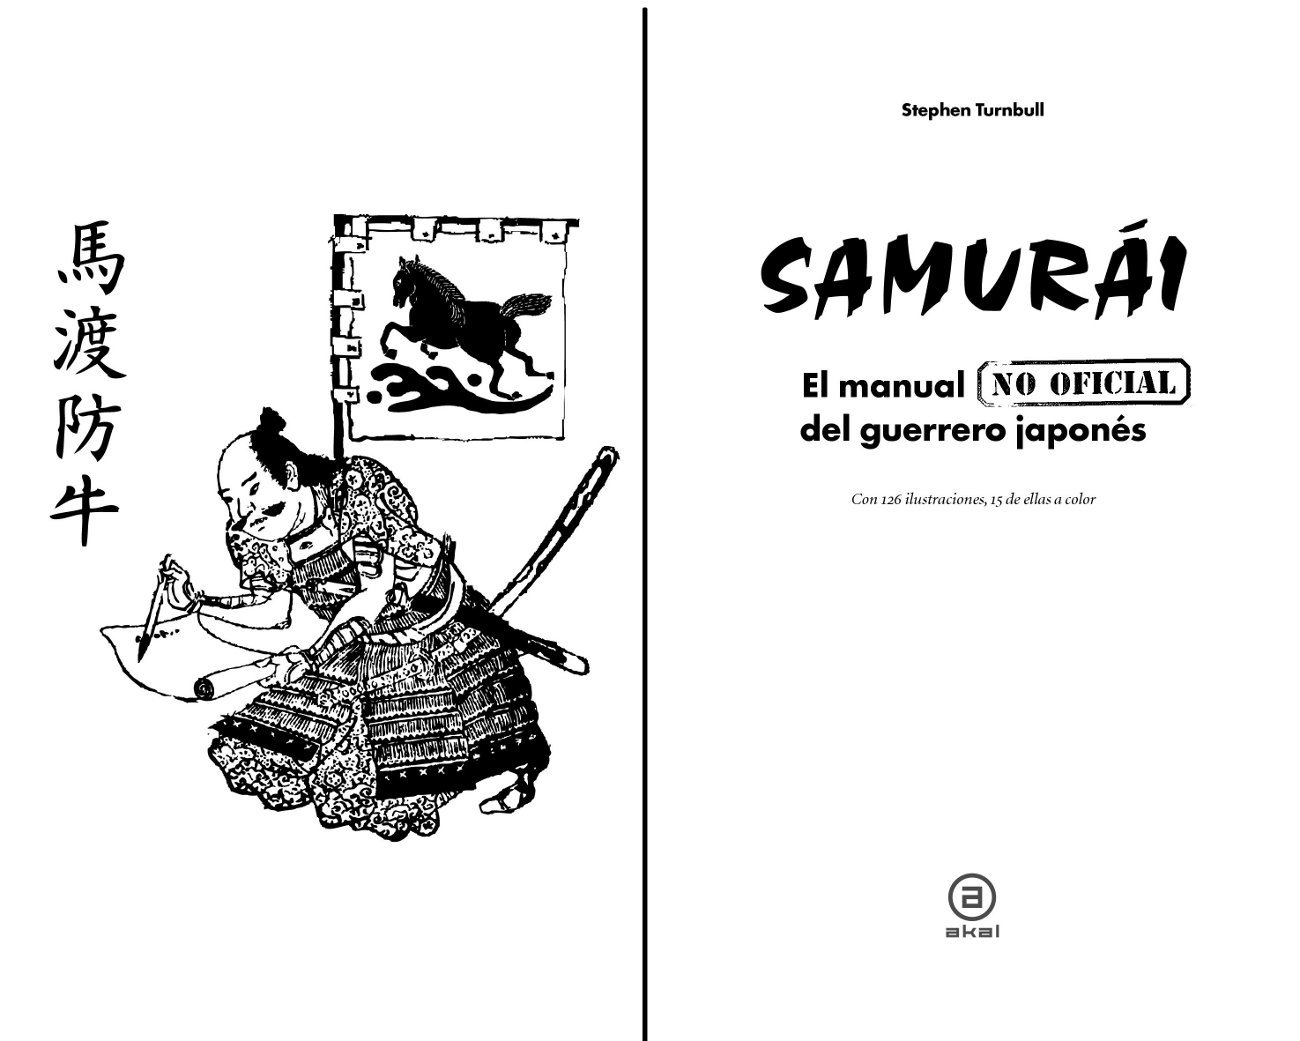 Samurái: El manual del guerrero japonés: STEPHEN TURNBULL: 9788446038603: Amazon.com: Books